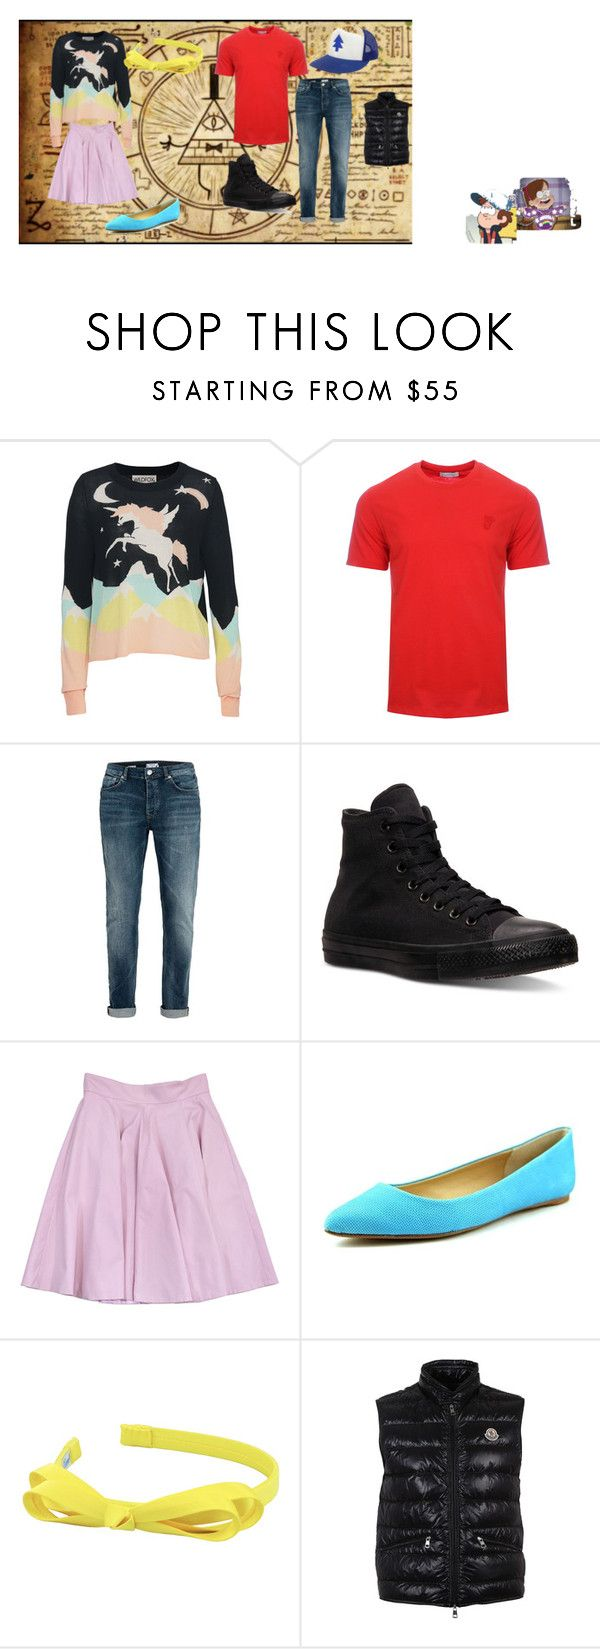 """Mabel and Dipper"" by abby155367 ❤ liked on Polyvore featuring Wildfox, Versace, Topman, Converse, Karen Millen, Joes, L. Erickson, Moncler and Disney"